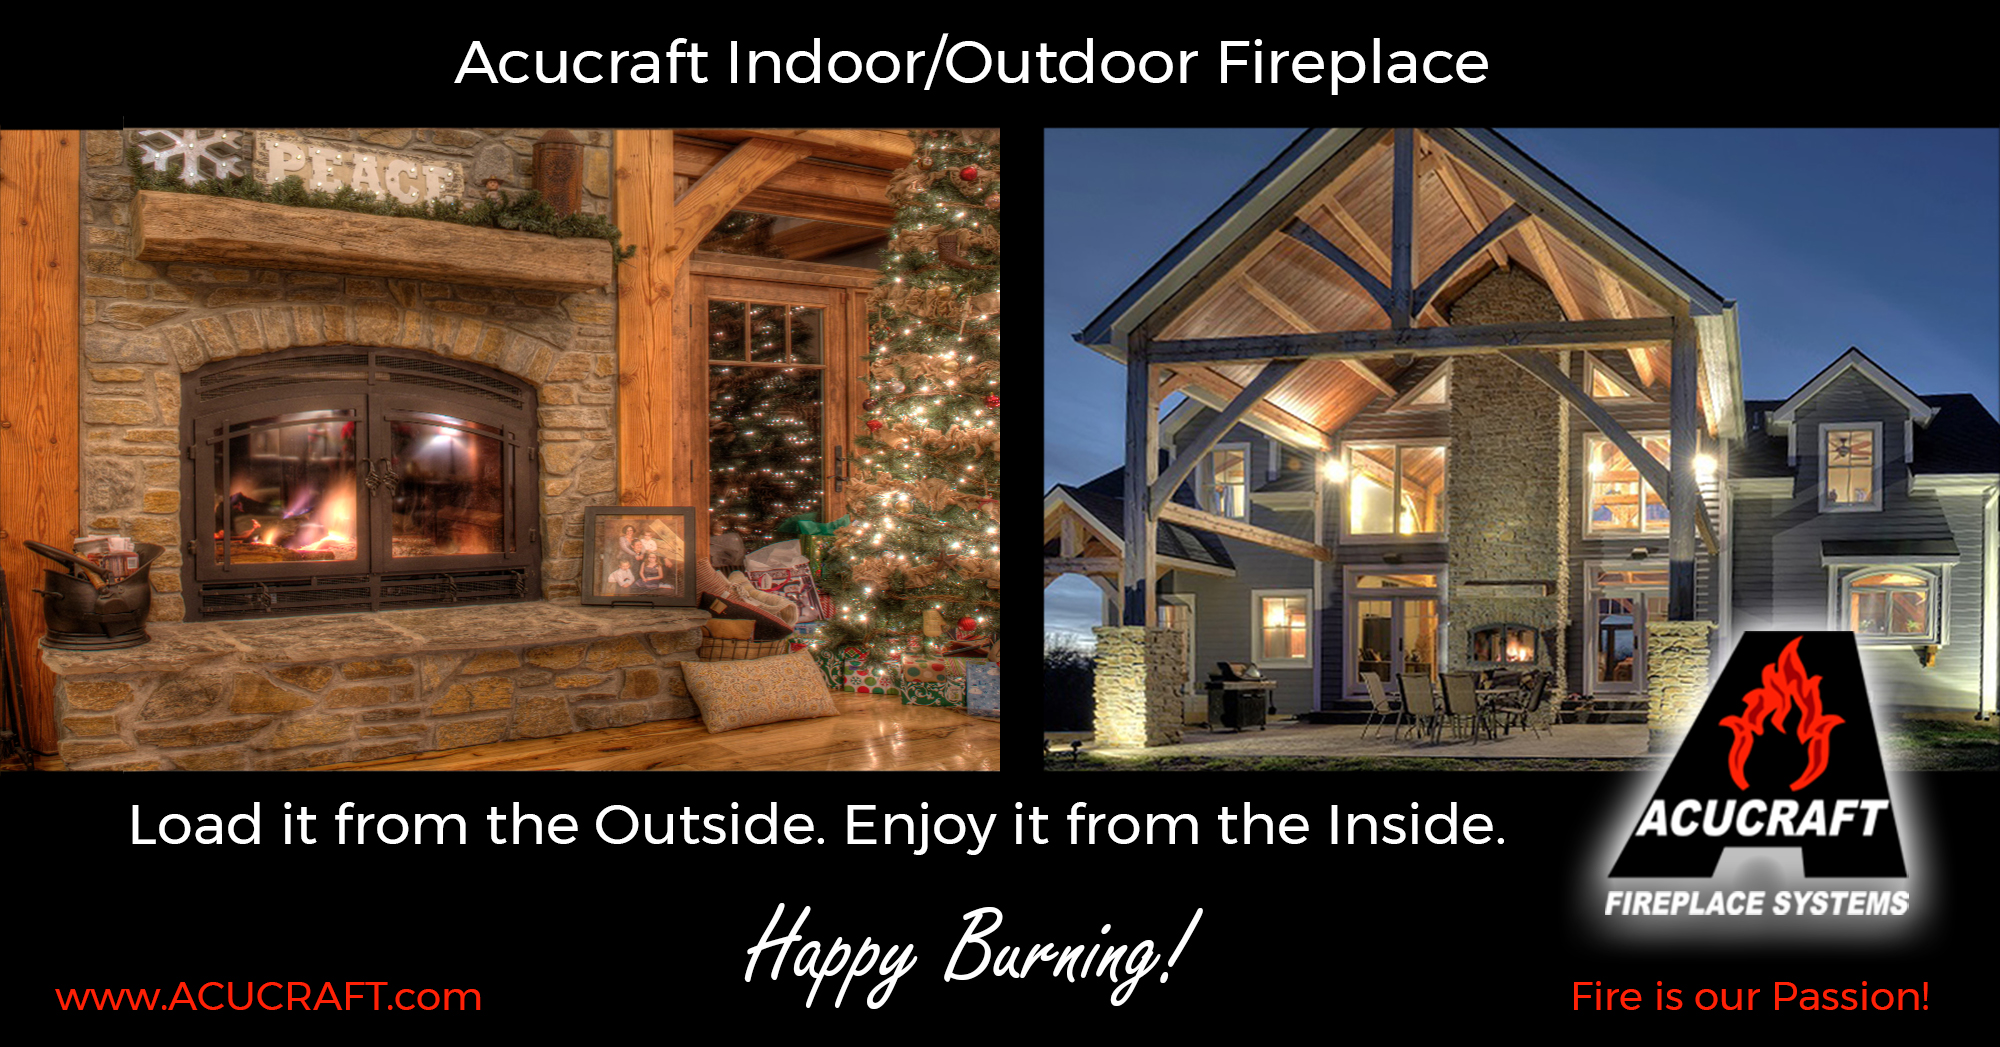 Acucraft Indoor Outdoor Fireplace Load it from the Outside Enjoy it from the Inside